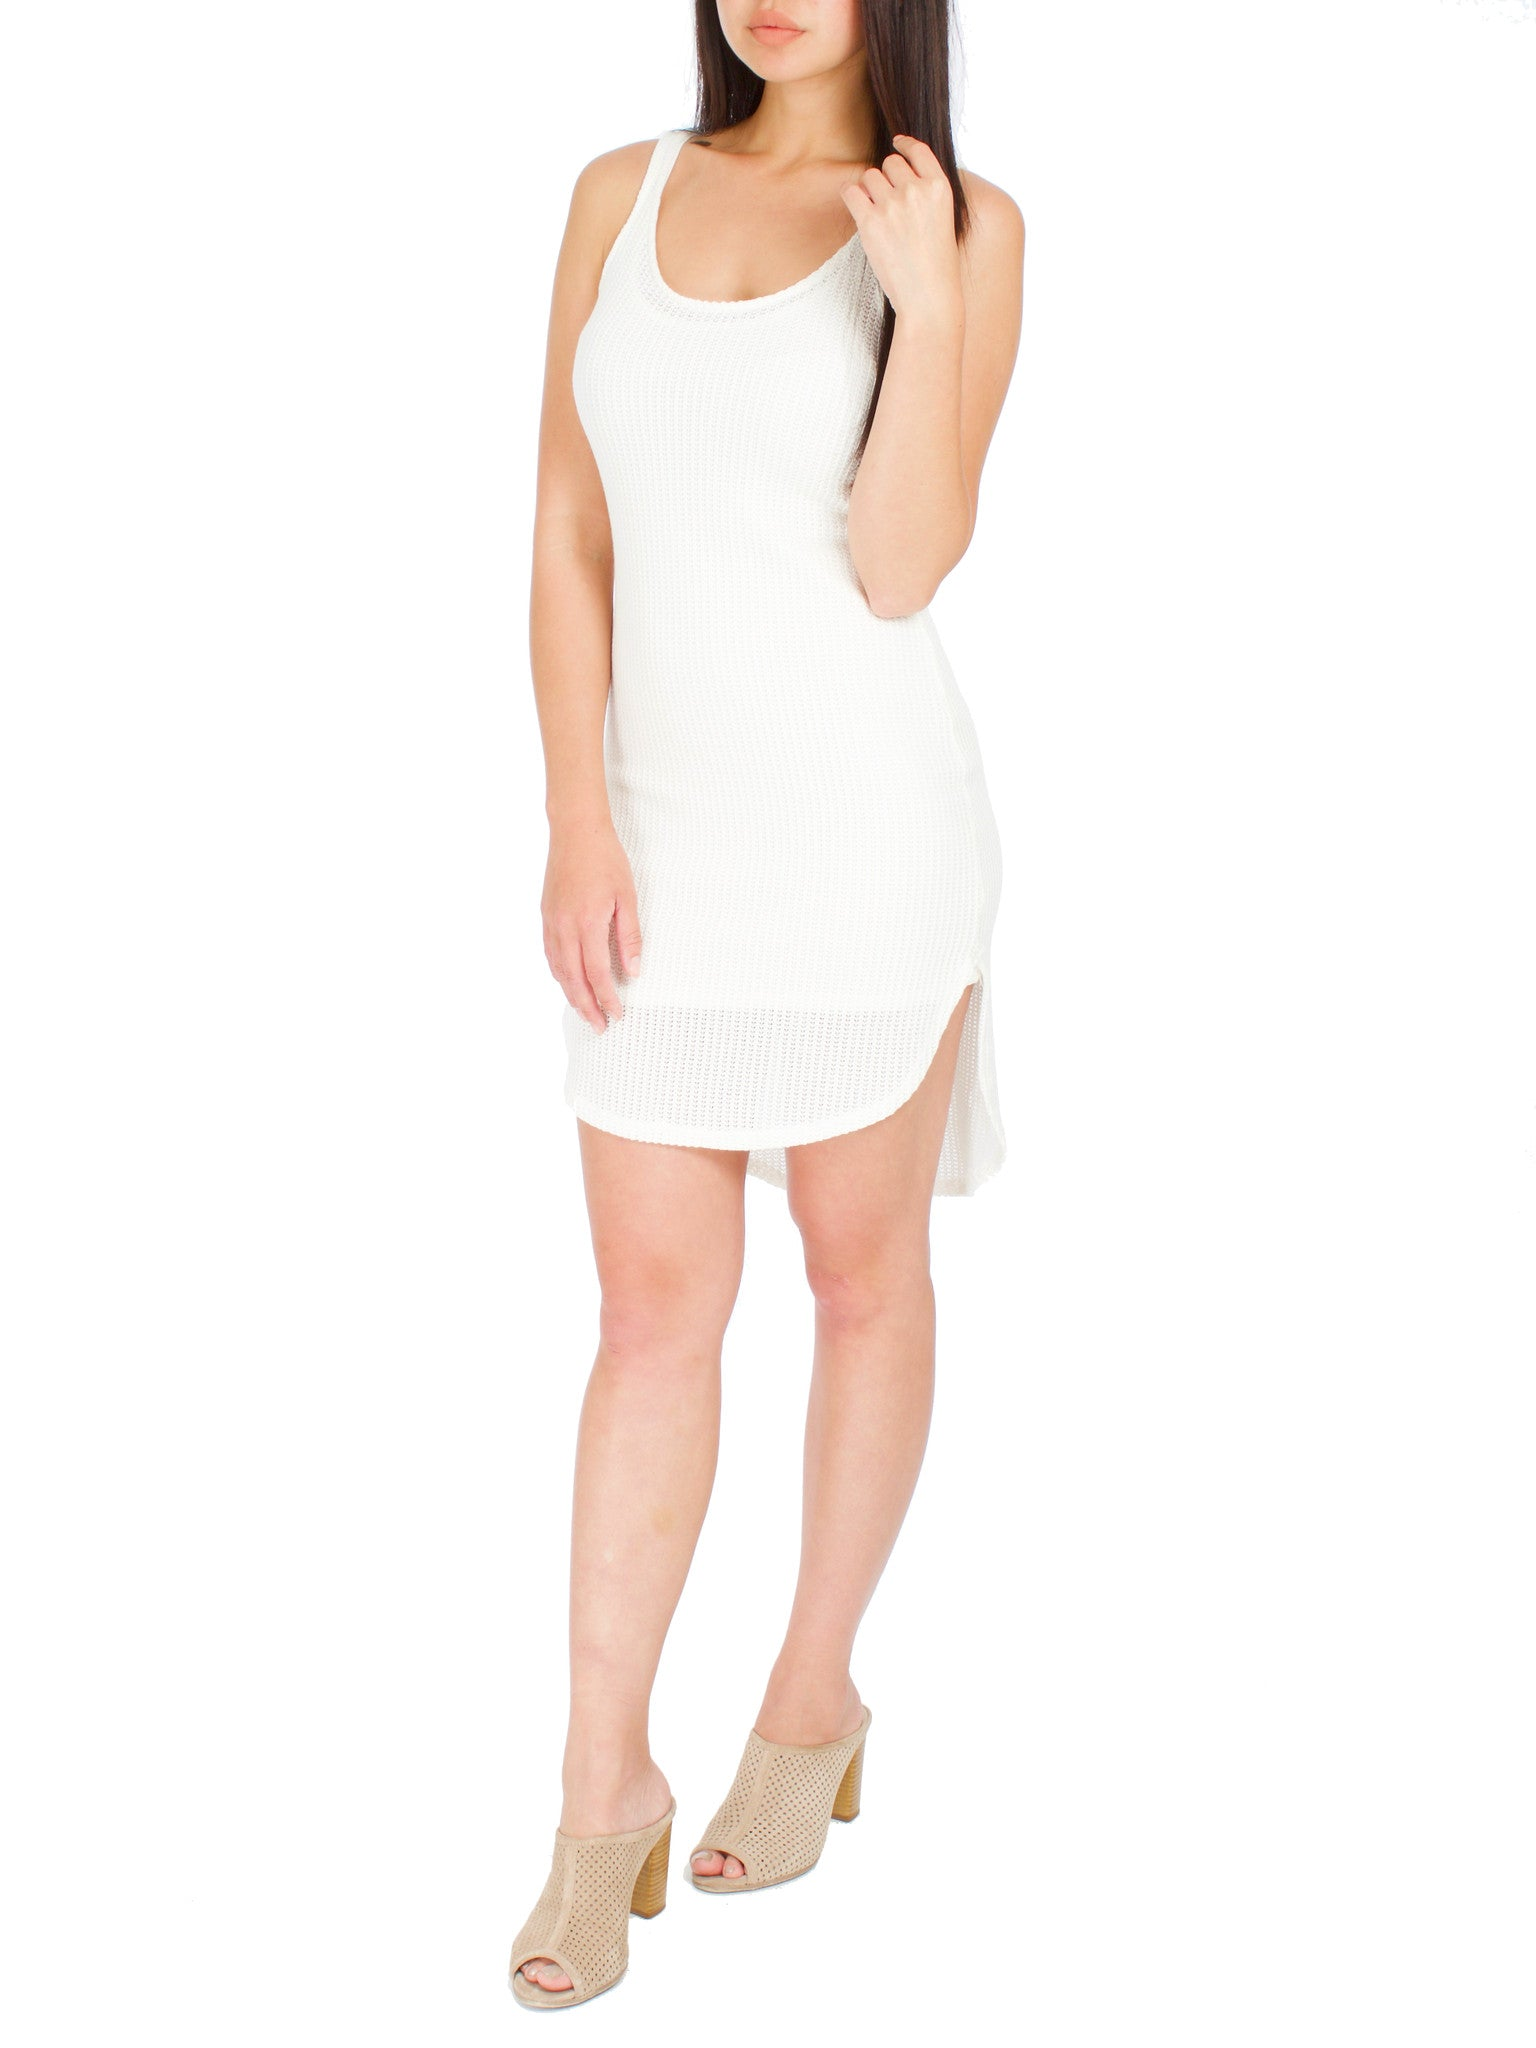 Two Way Knit Dress - PRADEGAL